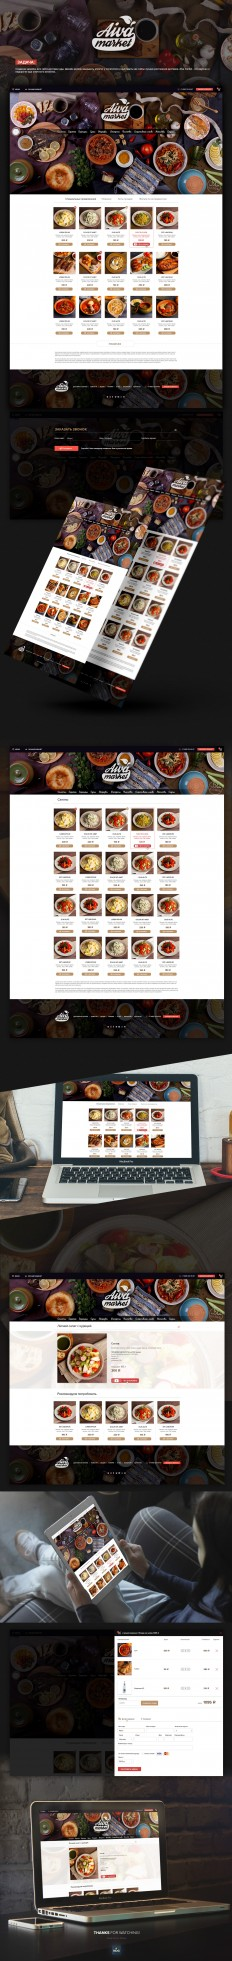 Aiva market - catering shop design on